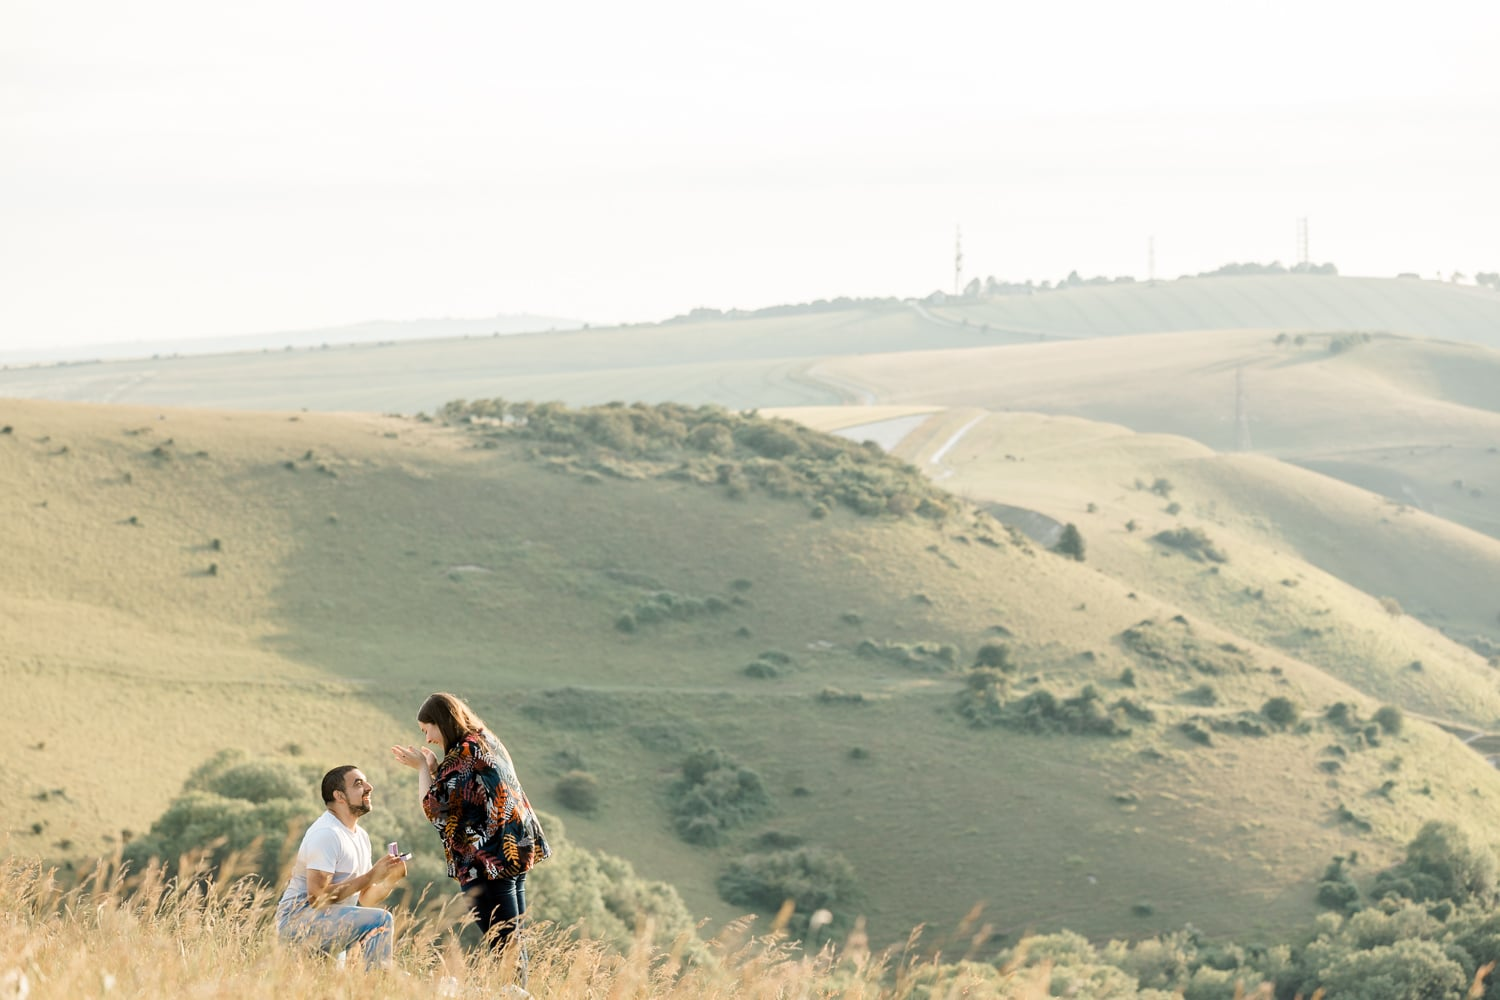 Devils Dyke proposal is one of the best places to propose in East Sussex